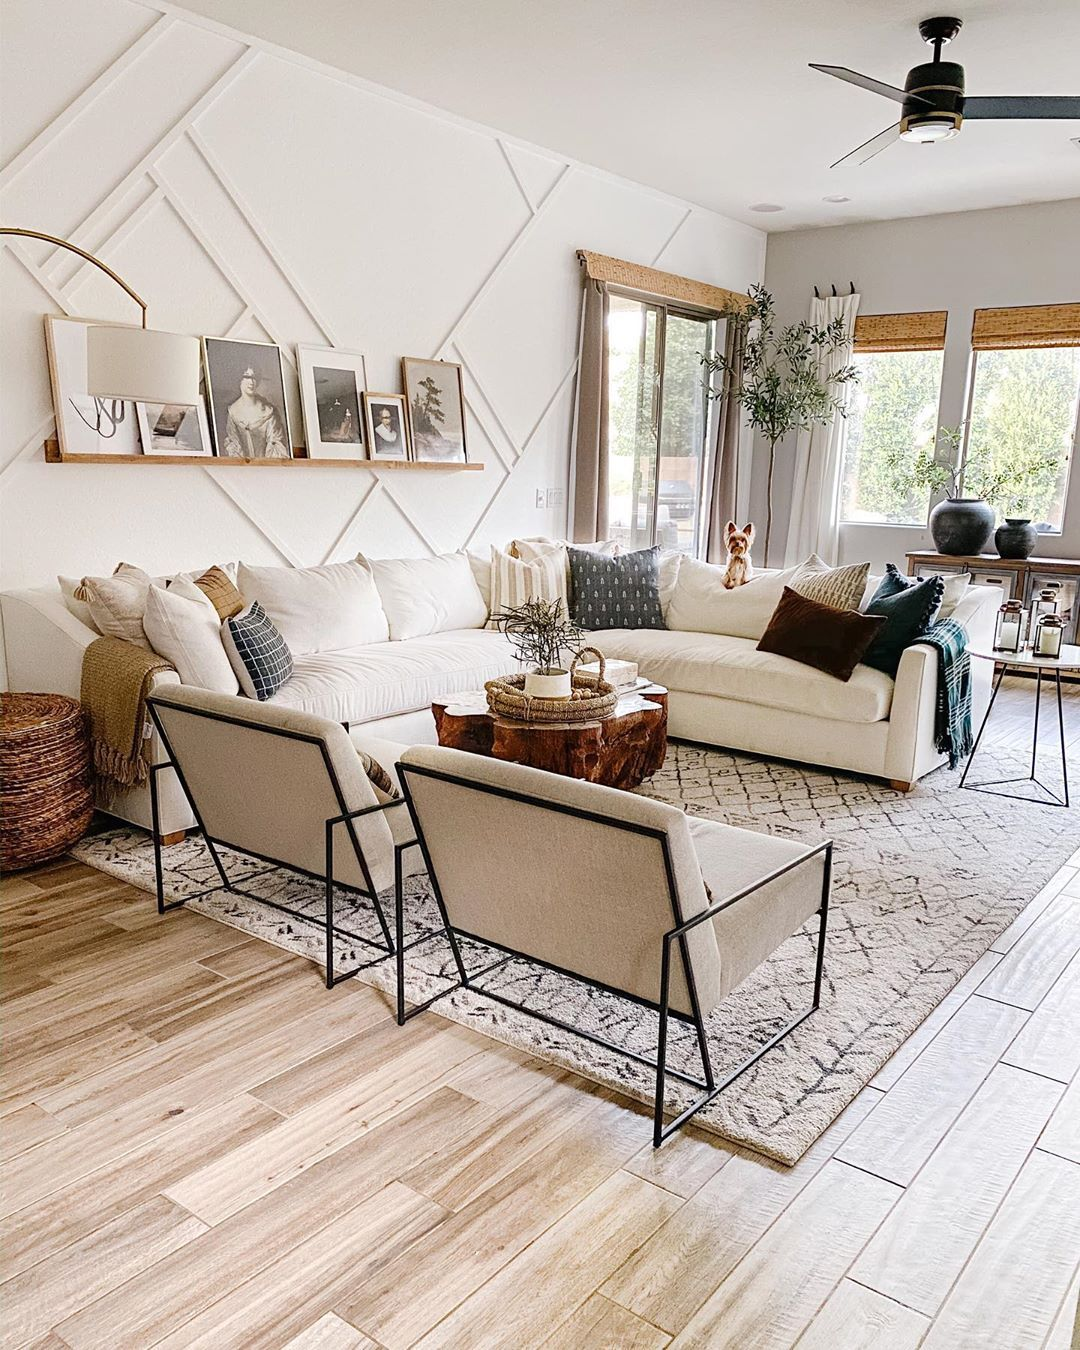 Best Living Room Ideas and Decor in 2021